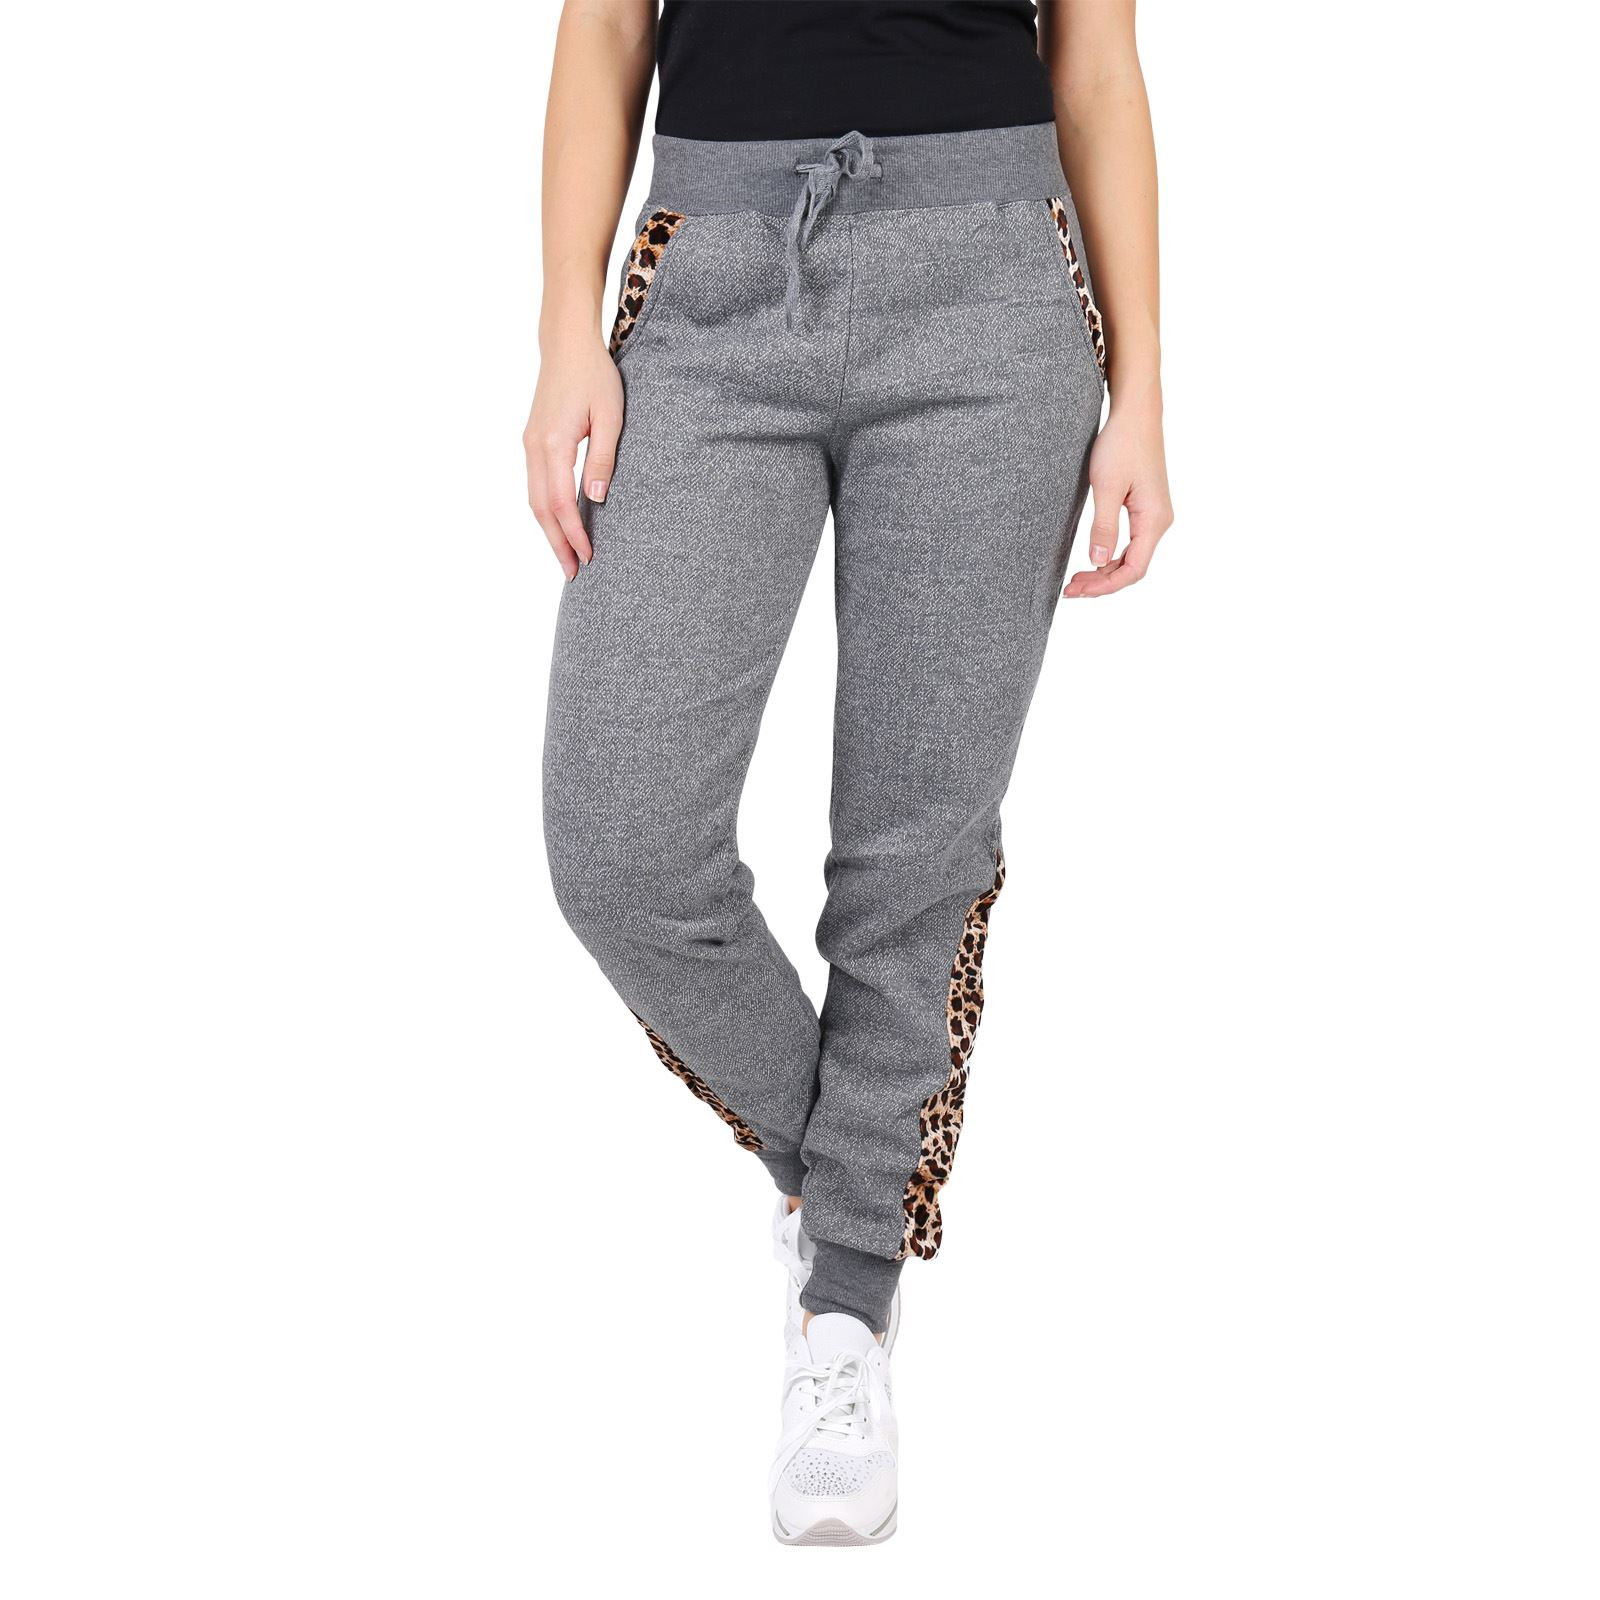 DICK'S carries a variety of women's sweatpants from industry-leading brands. Check off all the items on your to-do list in a pair of women's Nike® pants or opt for the latest from brands like Under Armour®, The North Face® and lucy®.